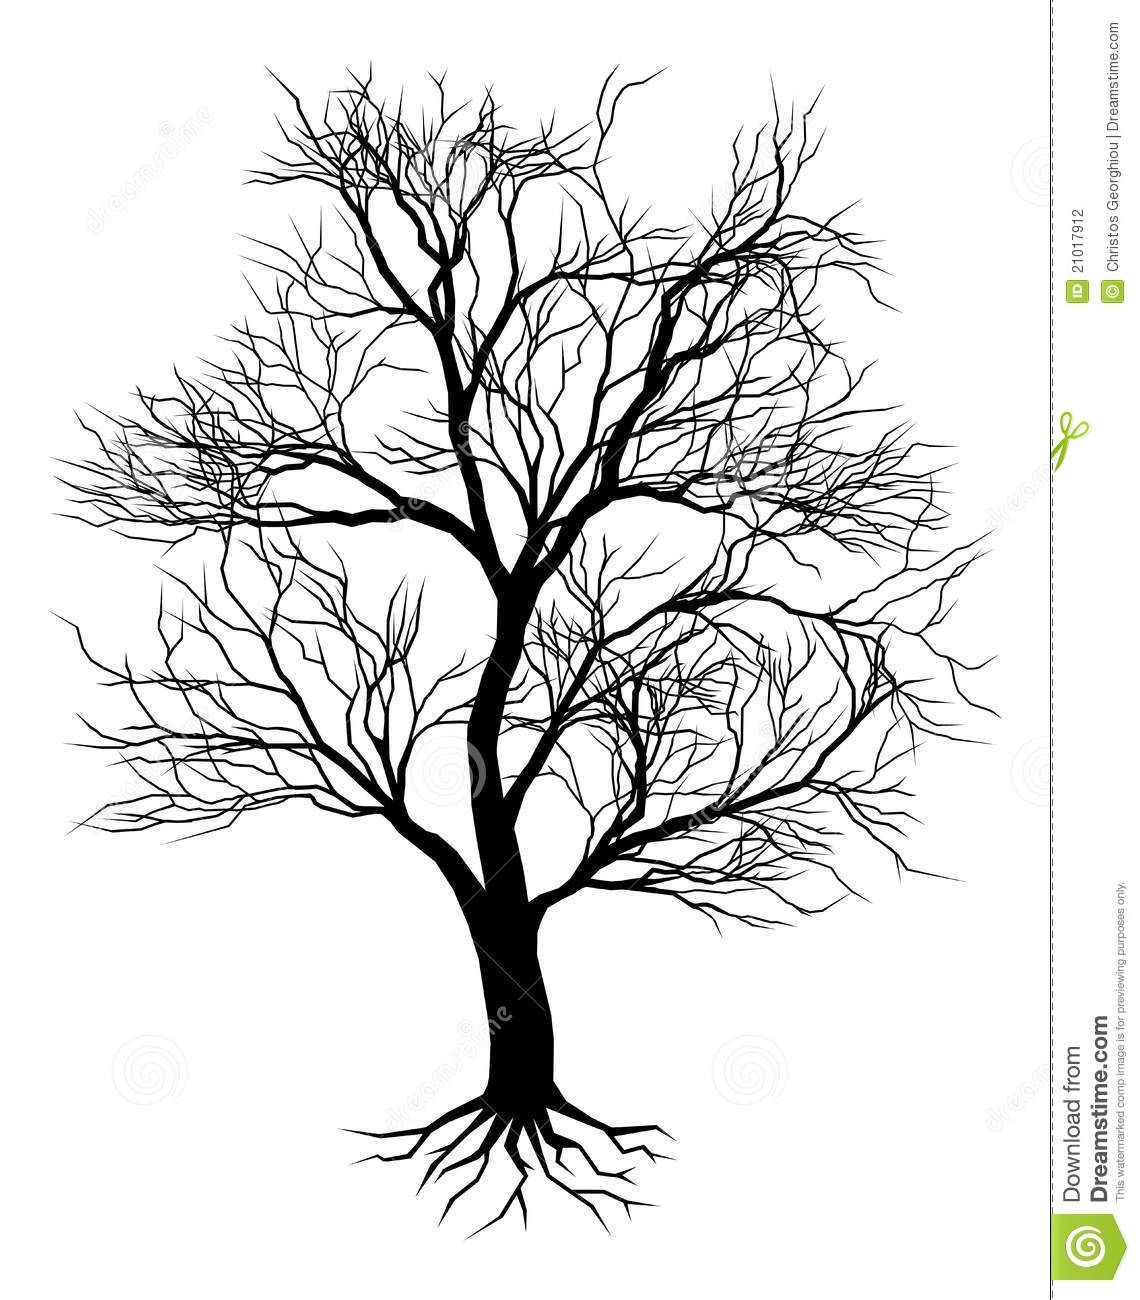 Wicked dead tree clipart clip freeuse Images For > Dead Oak Tree Drawing | My Style | Tree ... clip freeuse